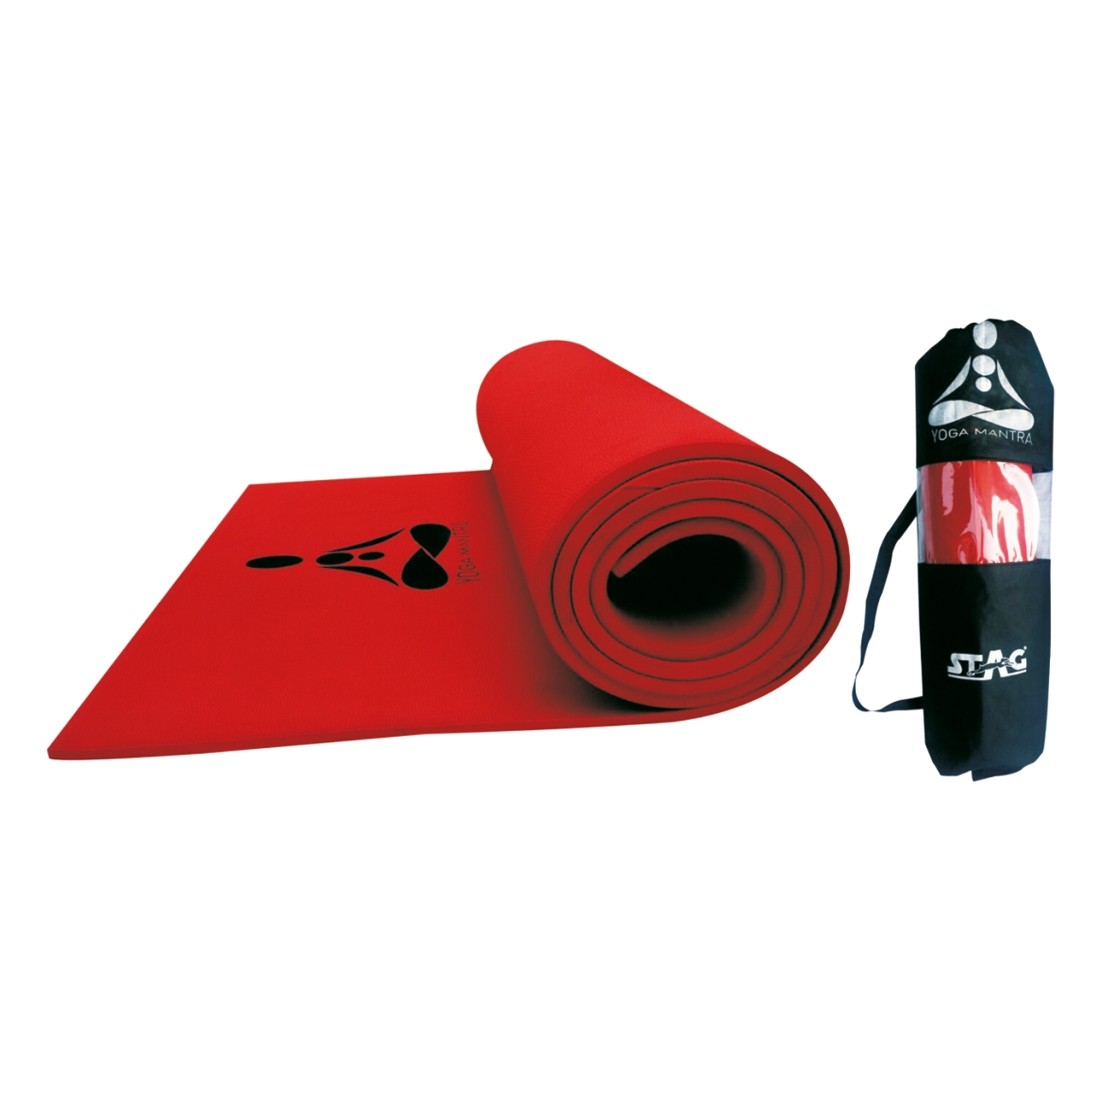 YOGA MANTRA BLACK/SILVERMAT 4 mm with bag